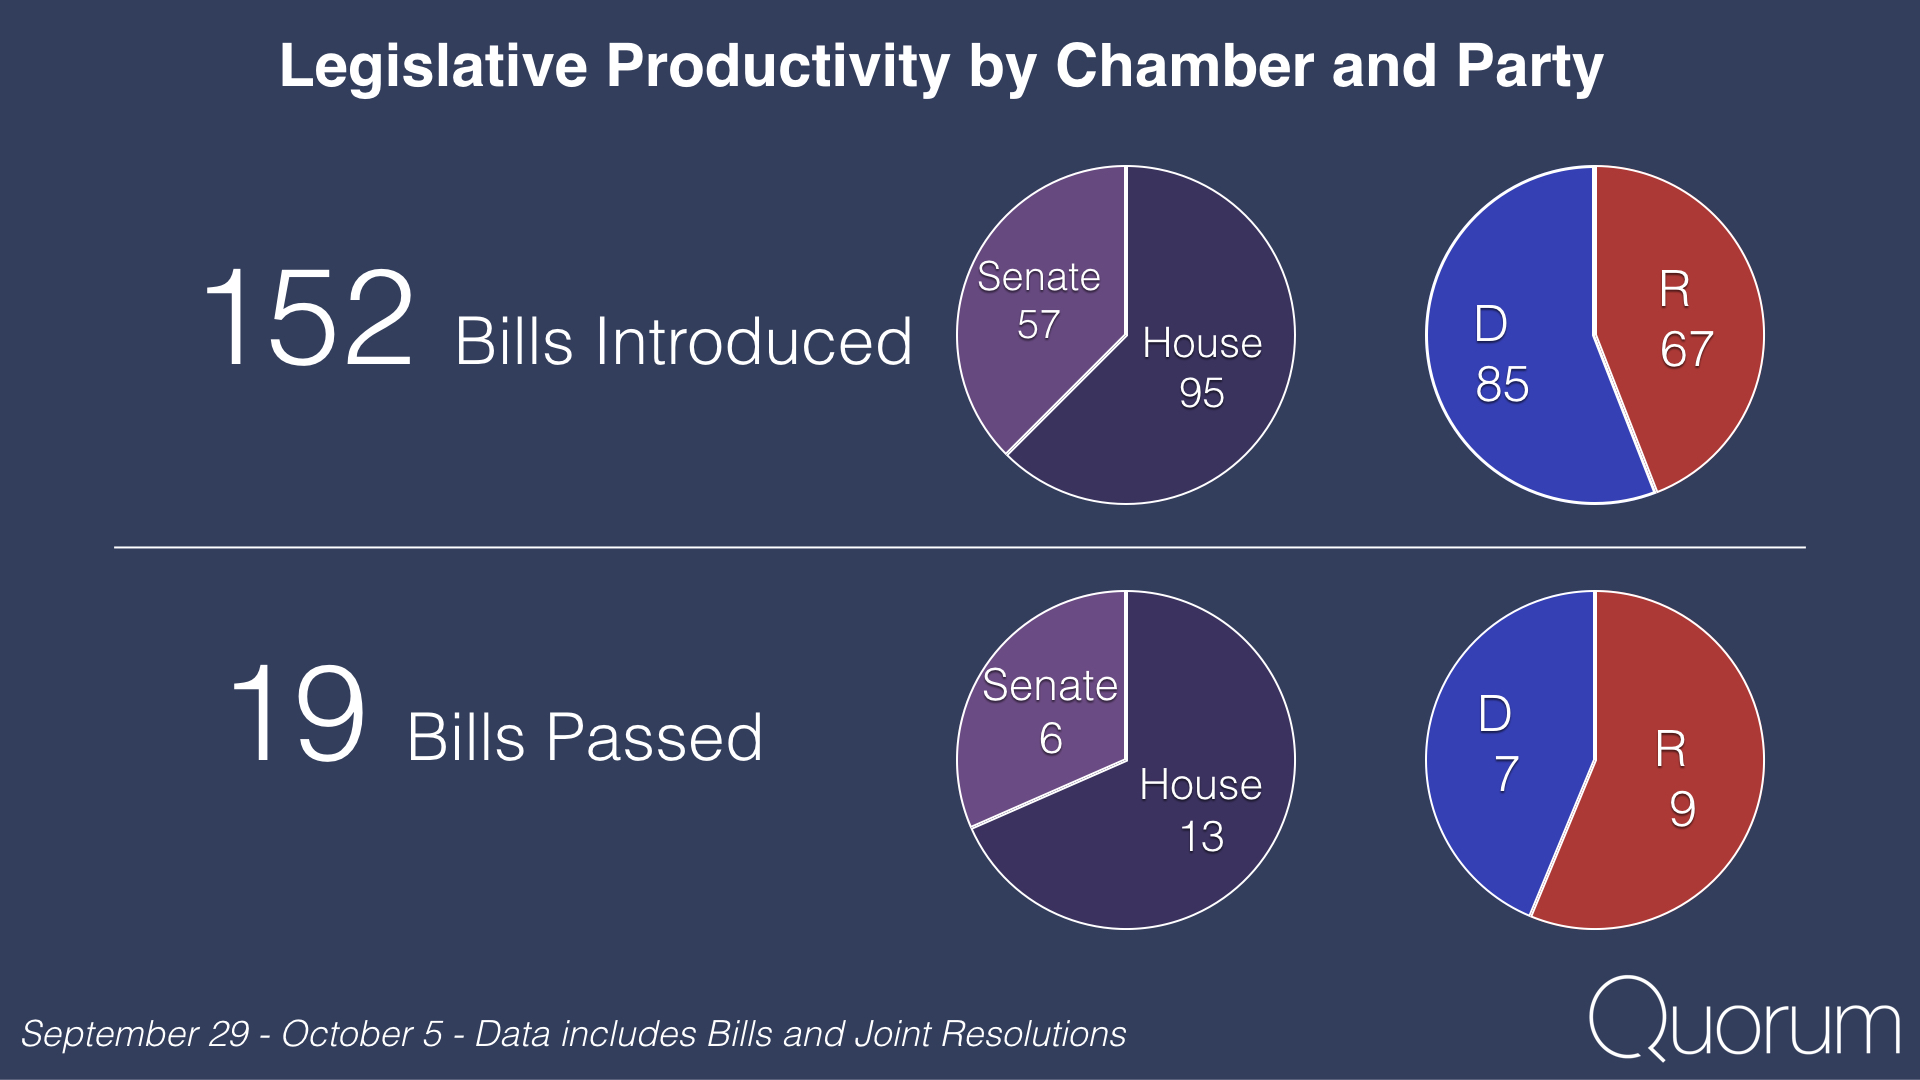 Legislative Productivity by chamber and party.